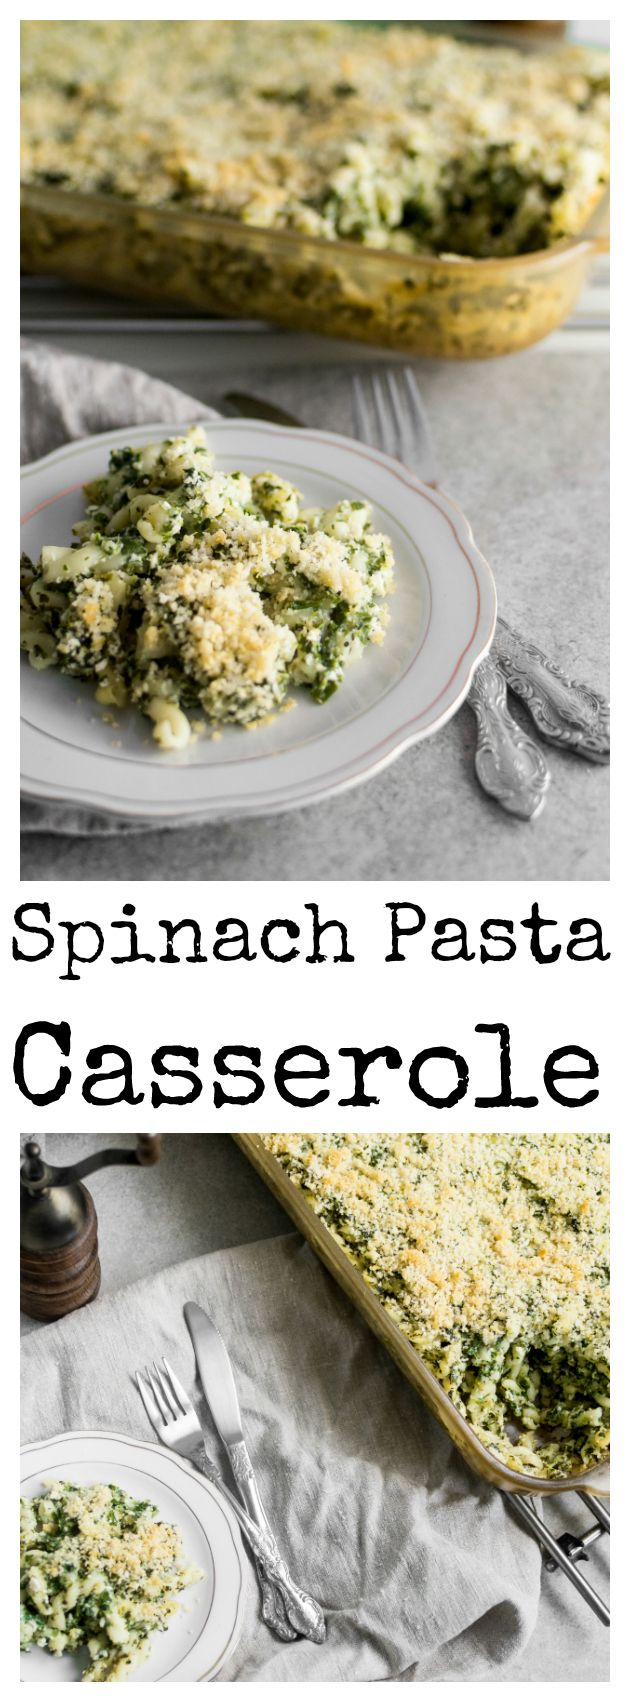 Crunchy vegan spinach pasta casserole.   Oven baked. Plant-based